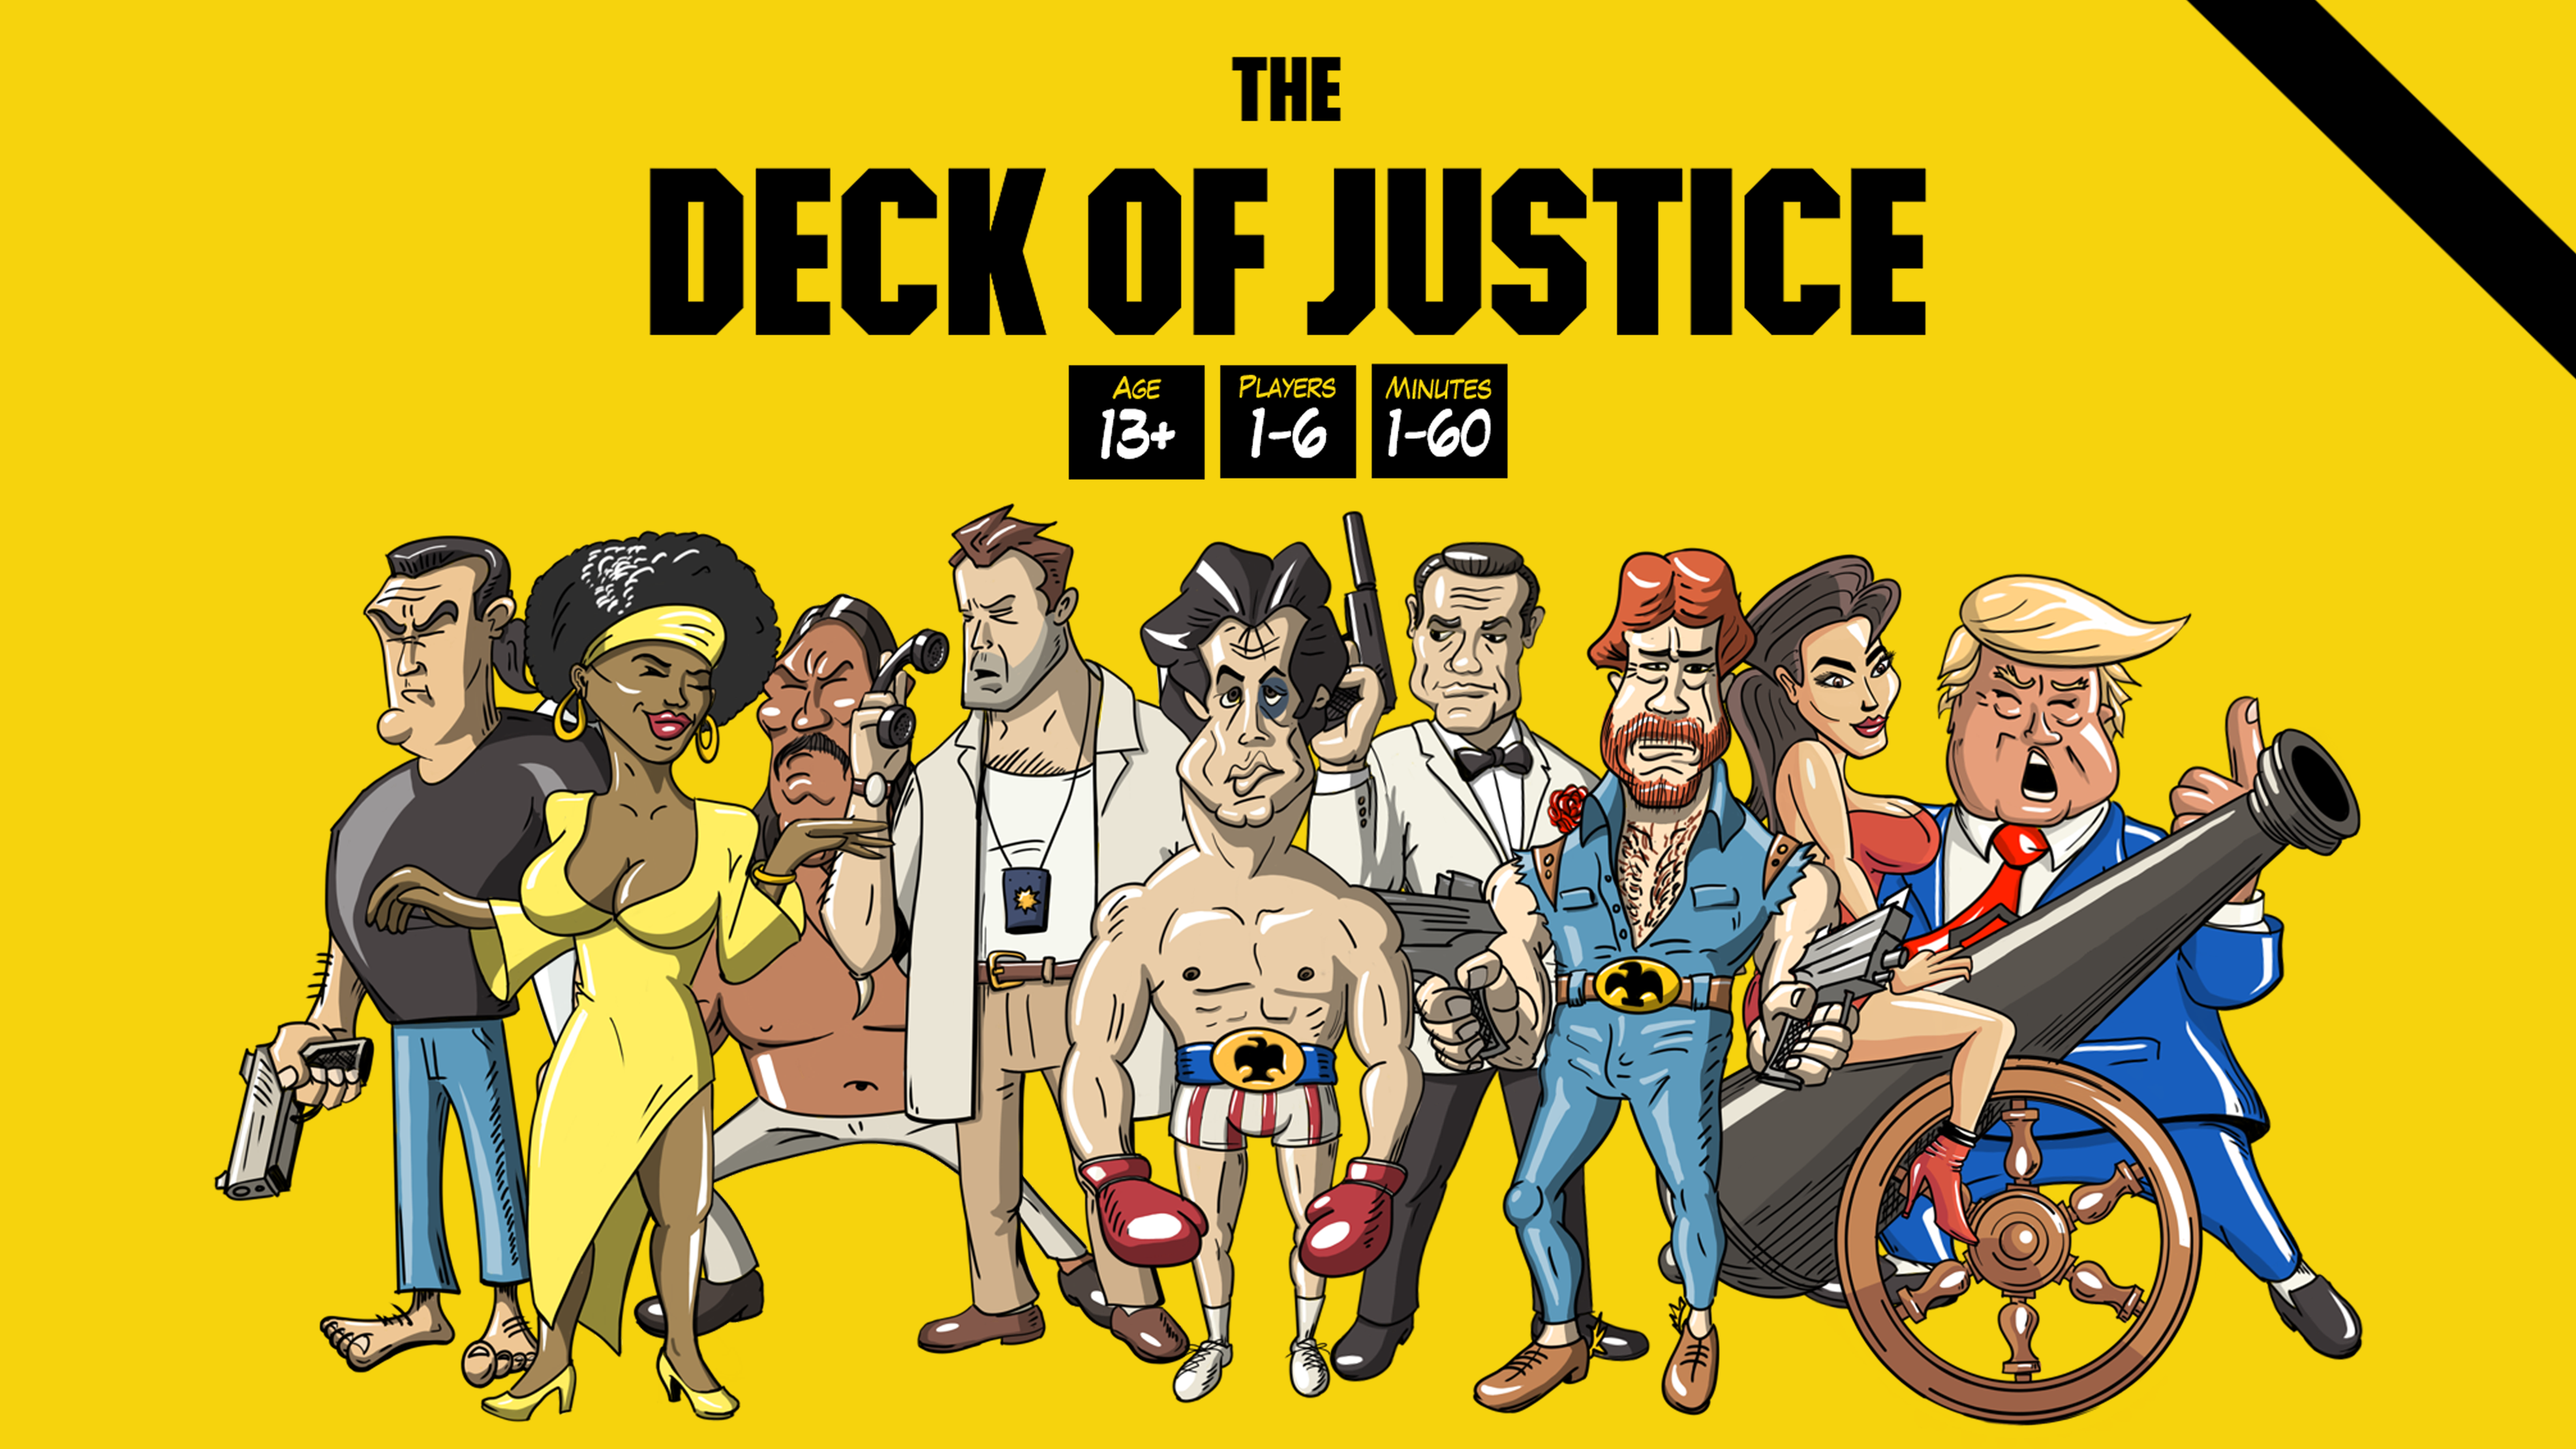 Deck of Justice - A Card Game On Steroids [Demo]